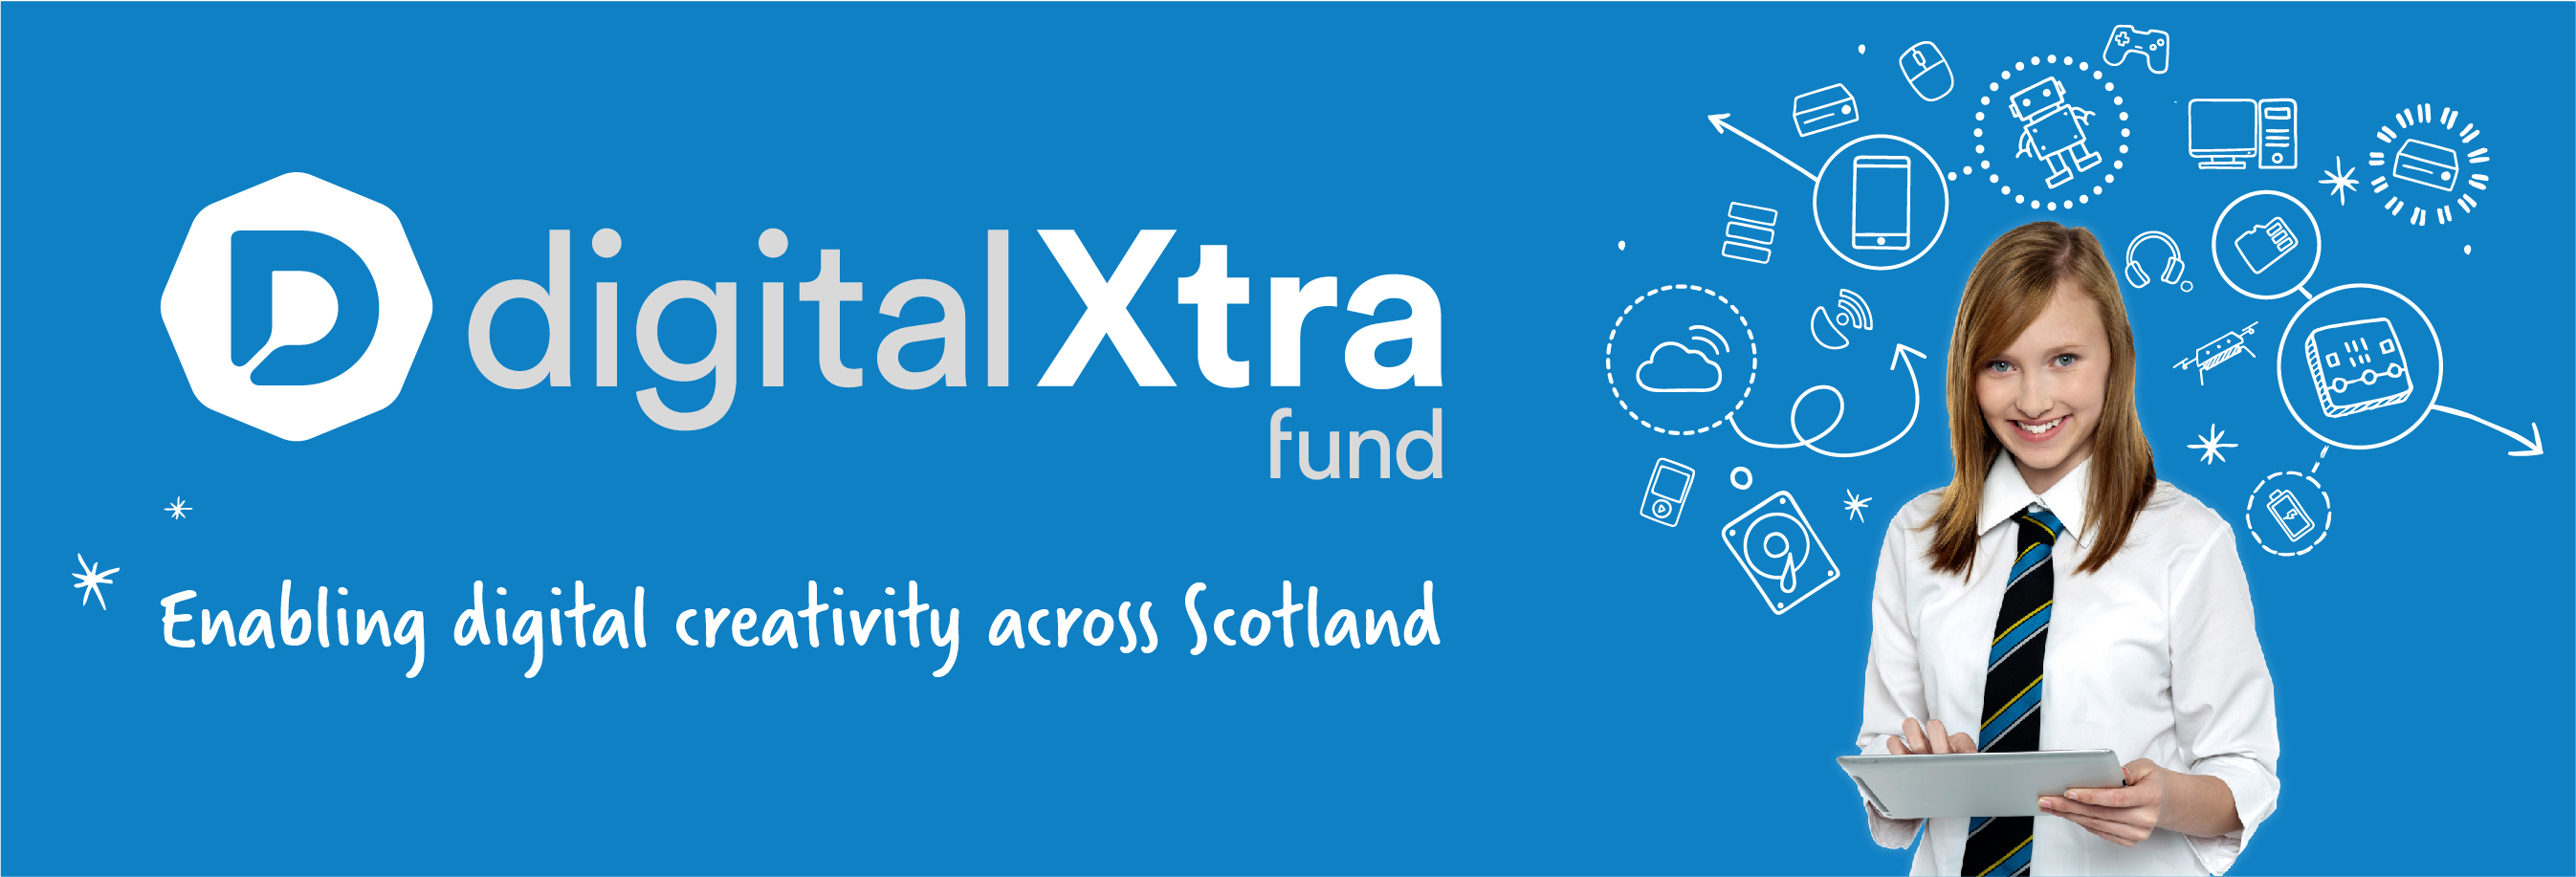 Digital Xtra Fund is seeking to appoint a new Trustee